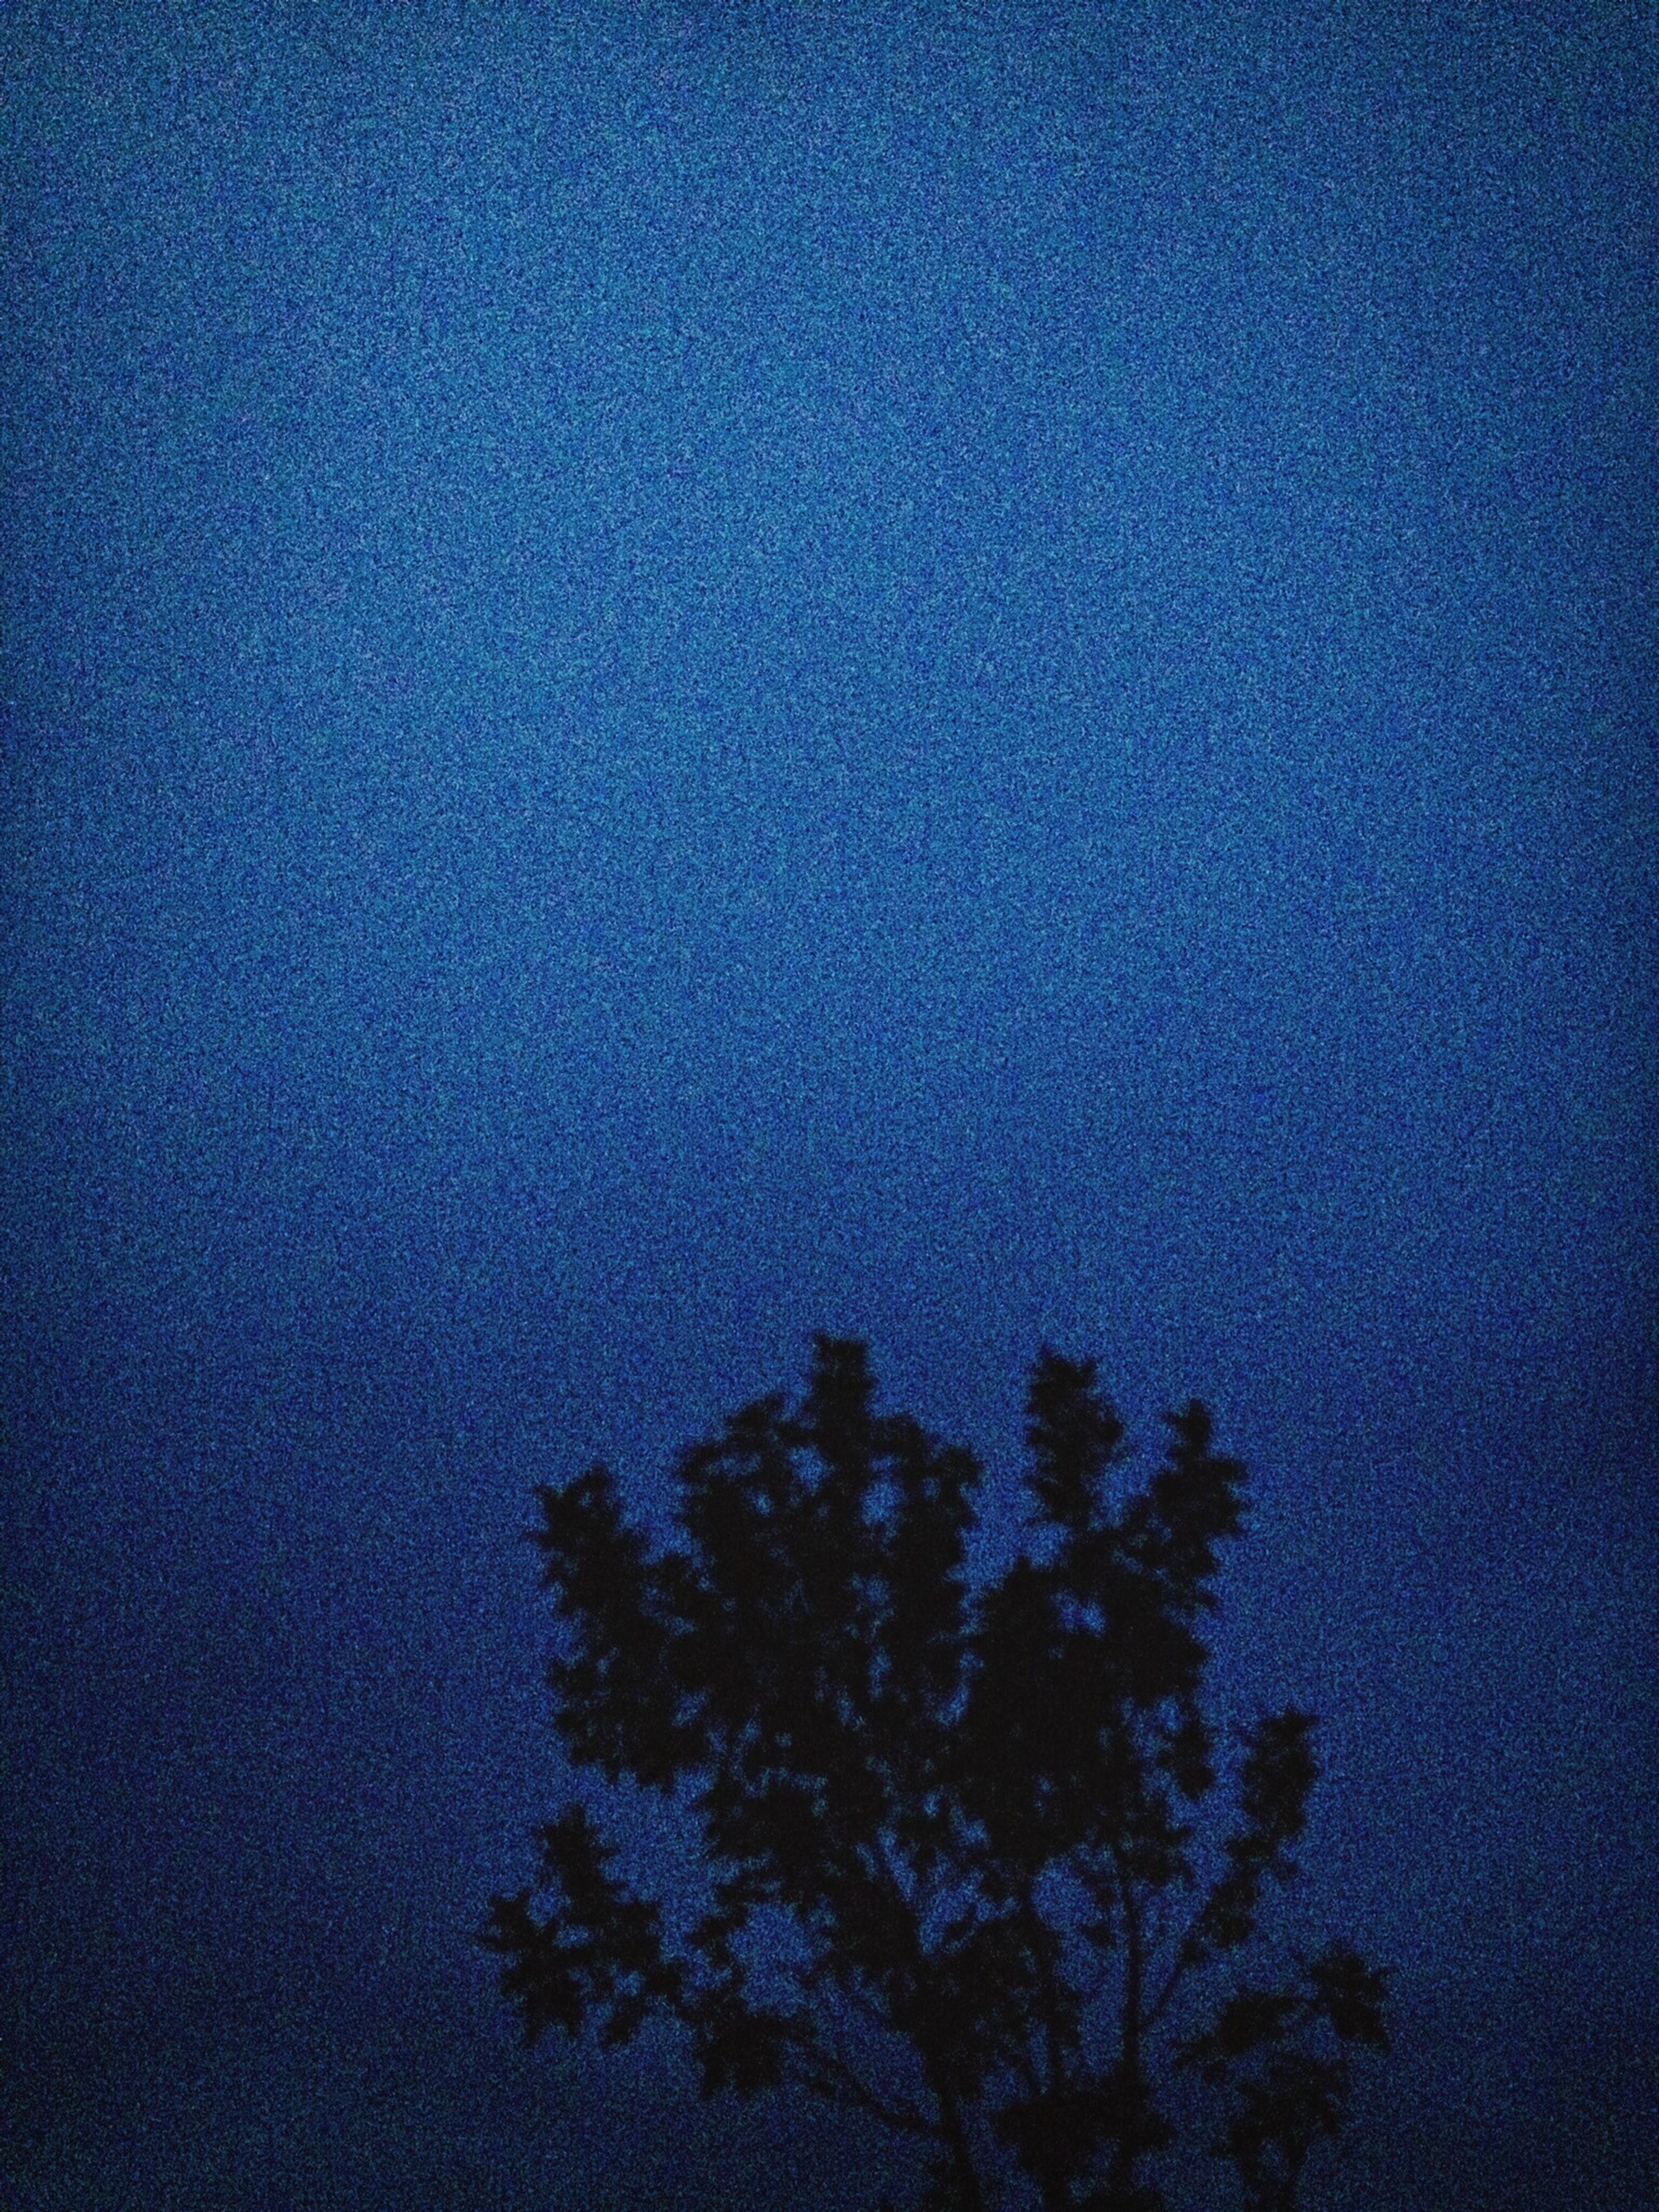 blue, low angle view, tree, sky, tranquility, beauty in nature, nature, silhouette, scenics, copy space, tranquil scene, growth, high section, dusk, outdoors, no people, idyllic, night, clear sky, cloud - sky